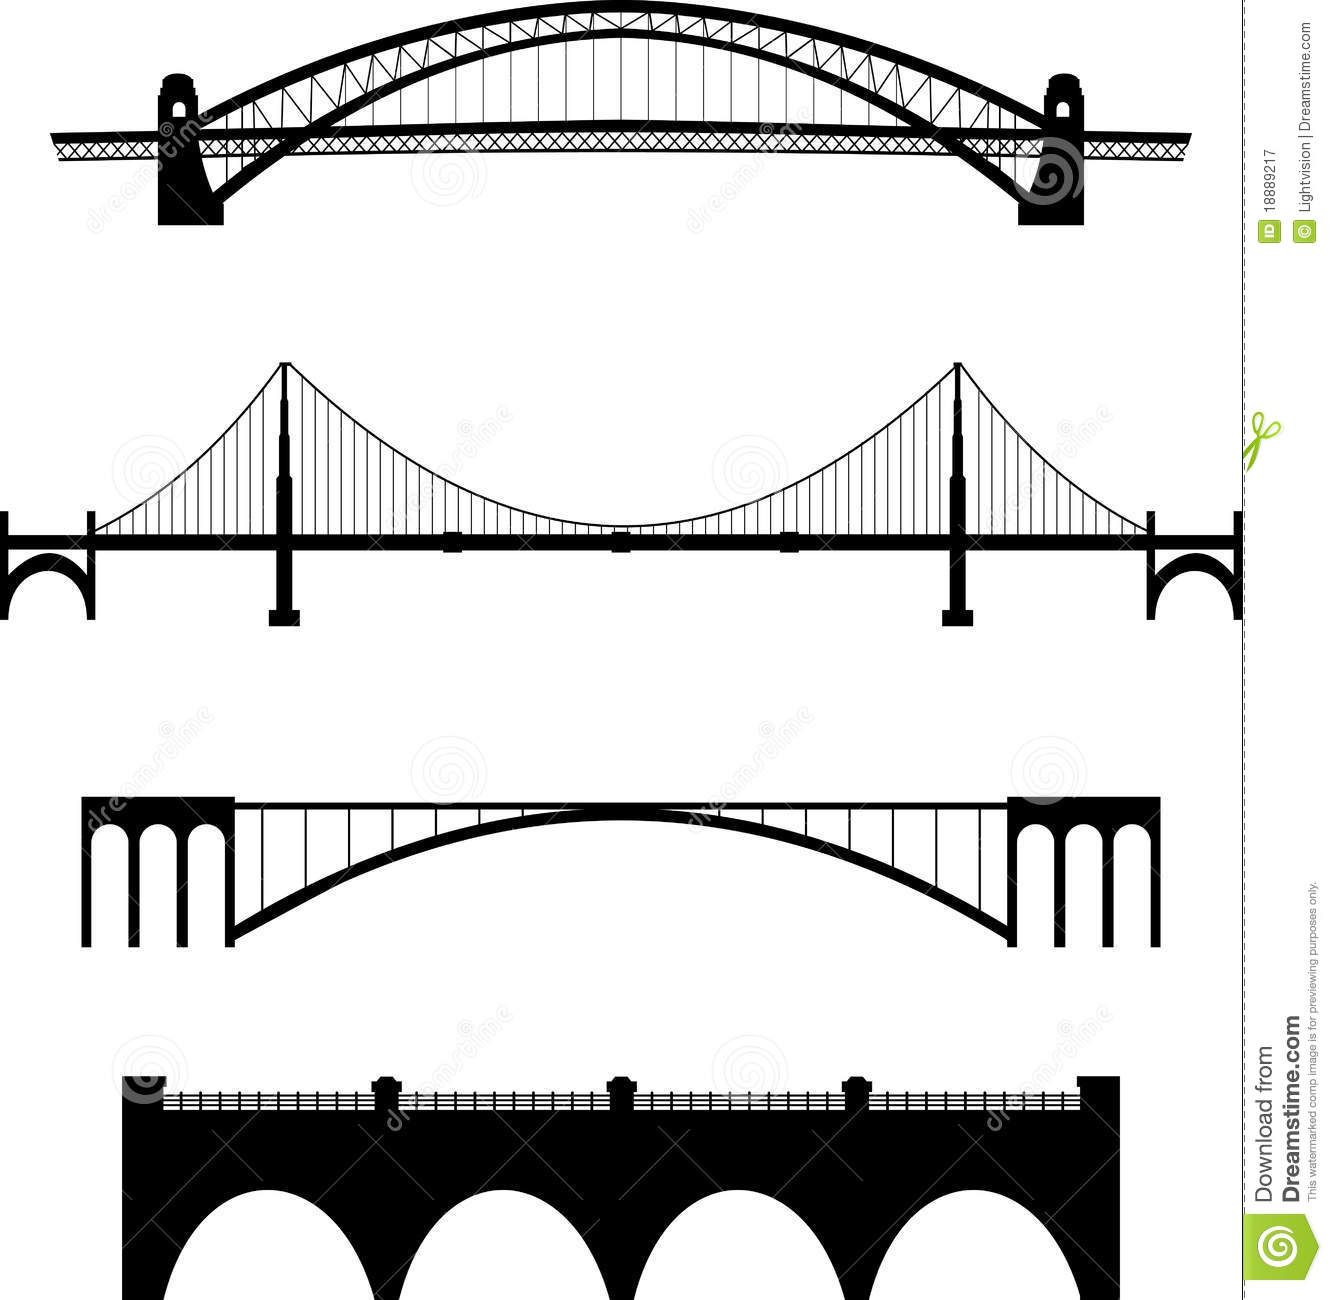 Golden Gate Bridge Drawing Clip Art Image result for bridg...